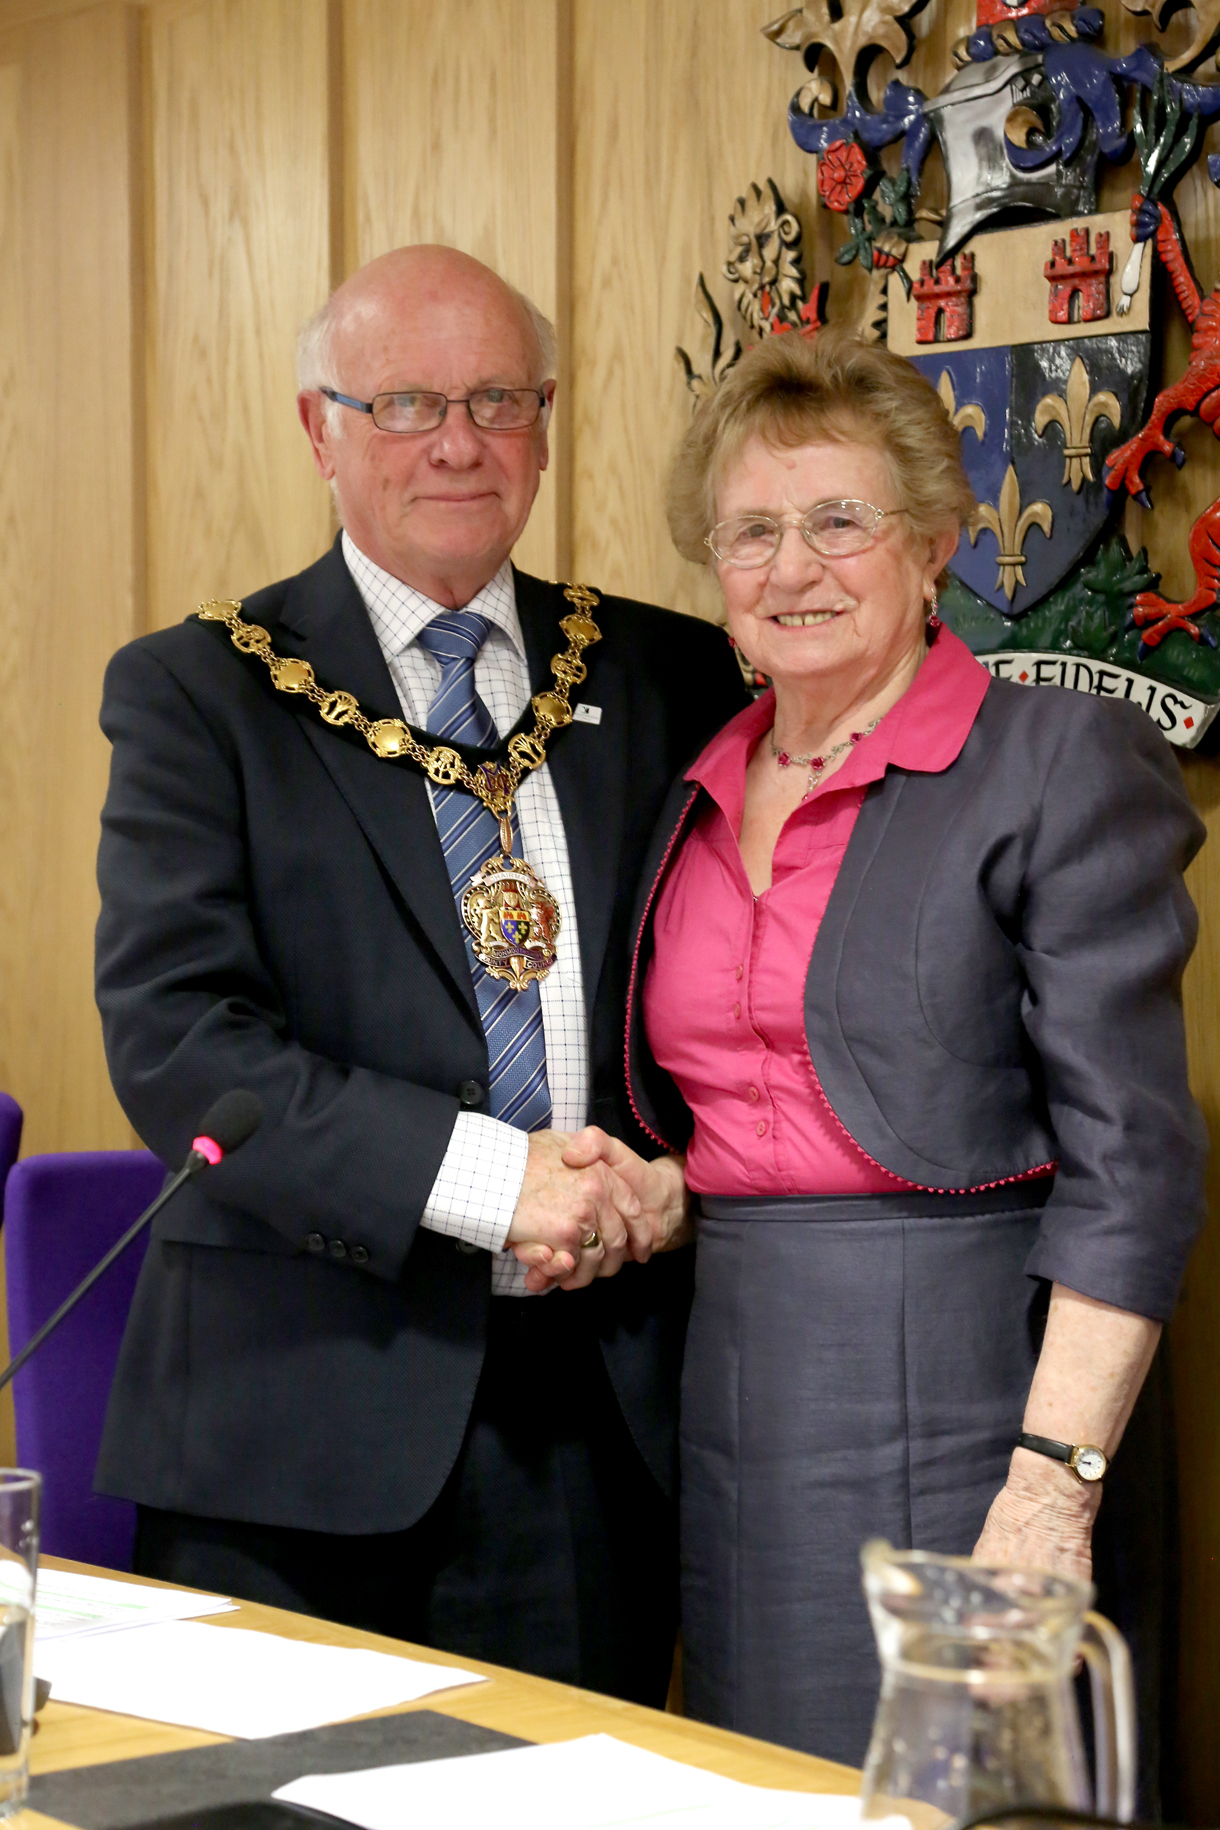 Councillor Peter Clarke with councillor Maureen Powell